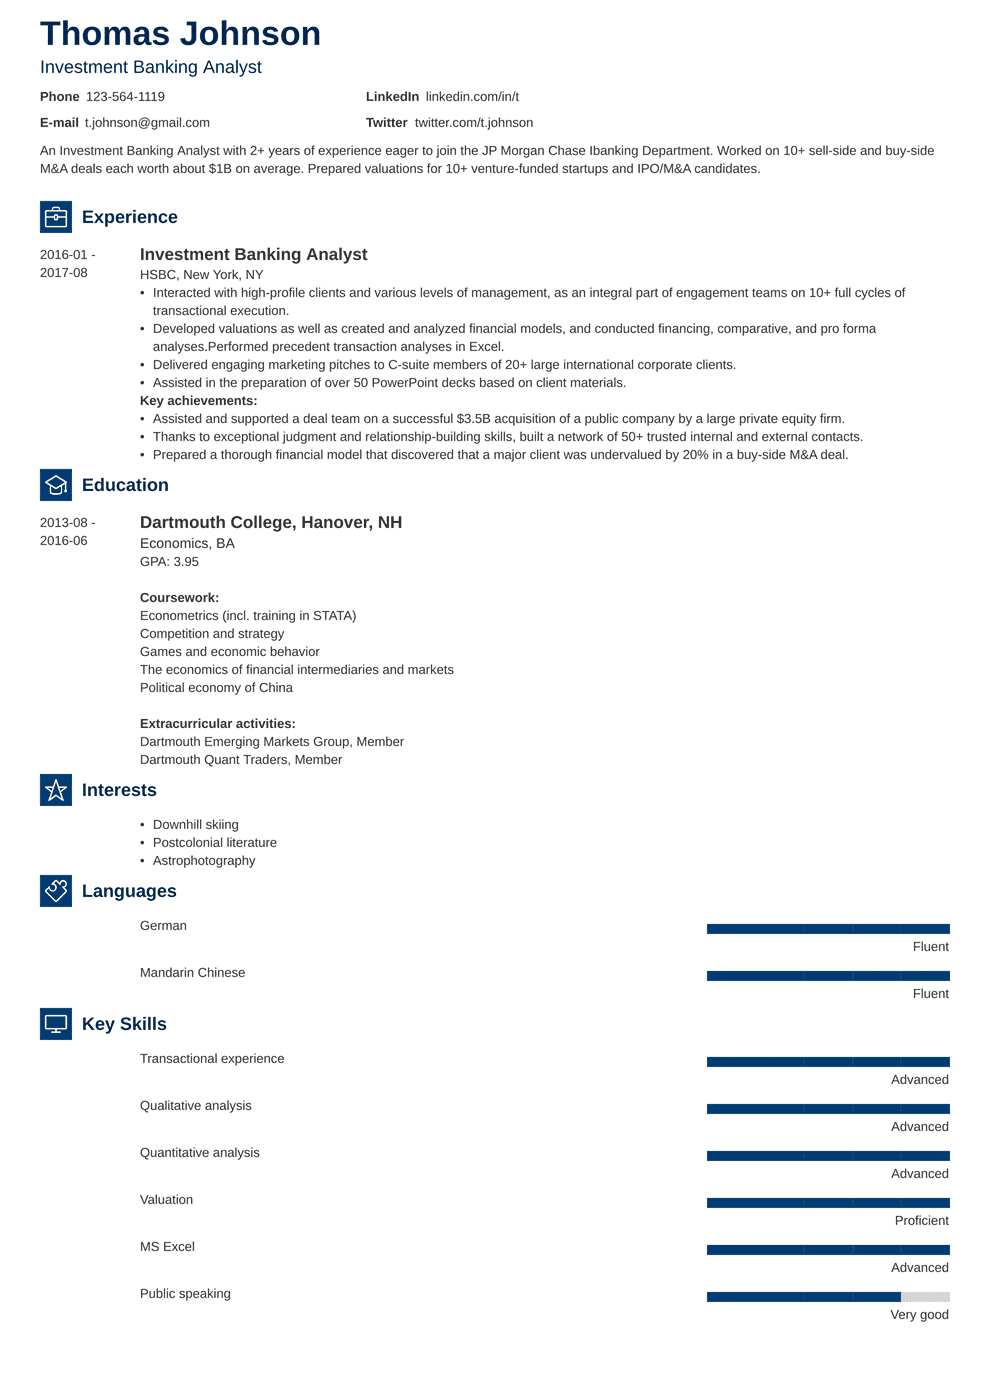 Investment Banking Resume: Sample and Writing Guide [20+